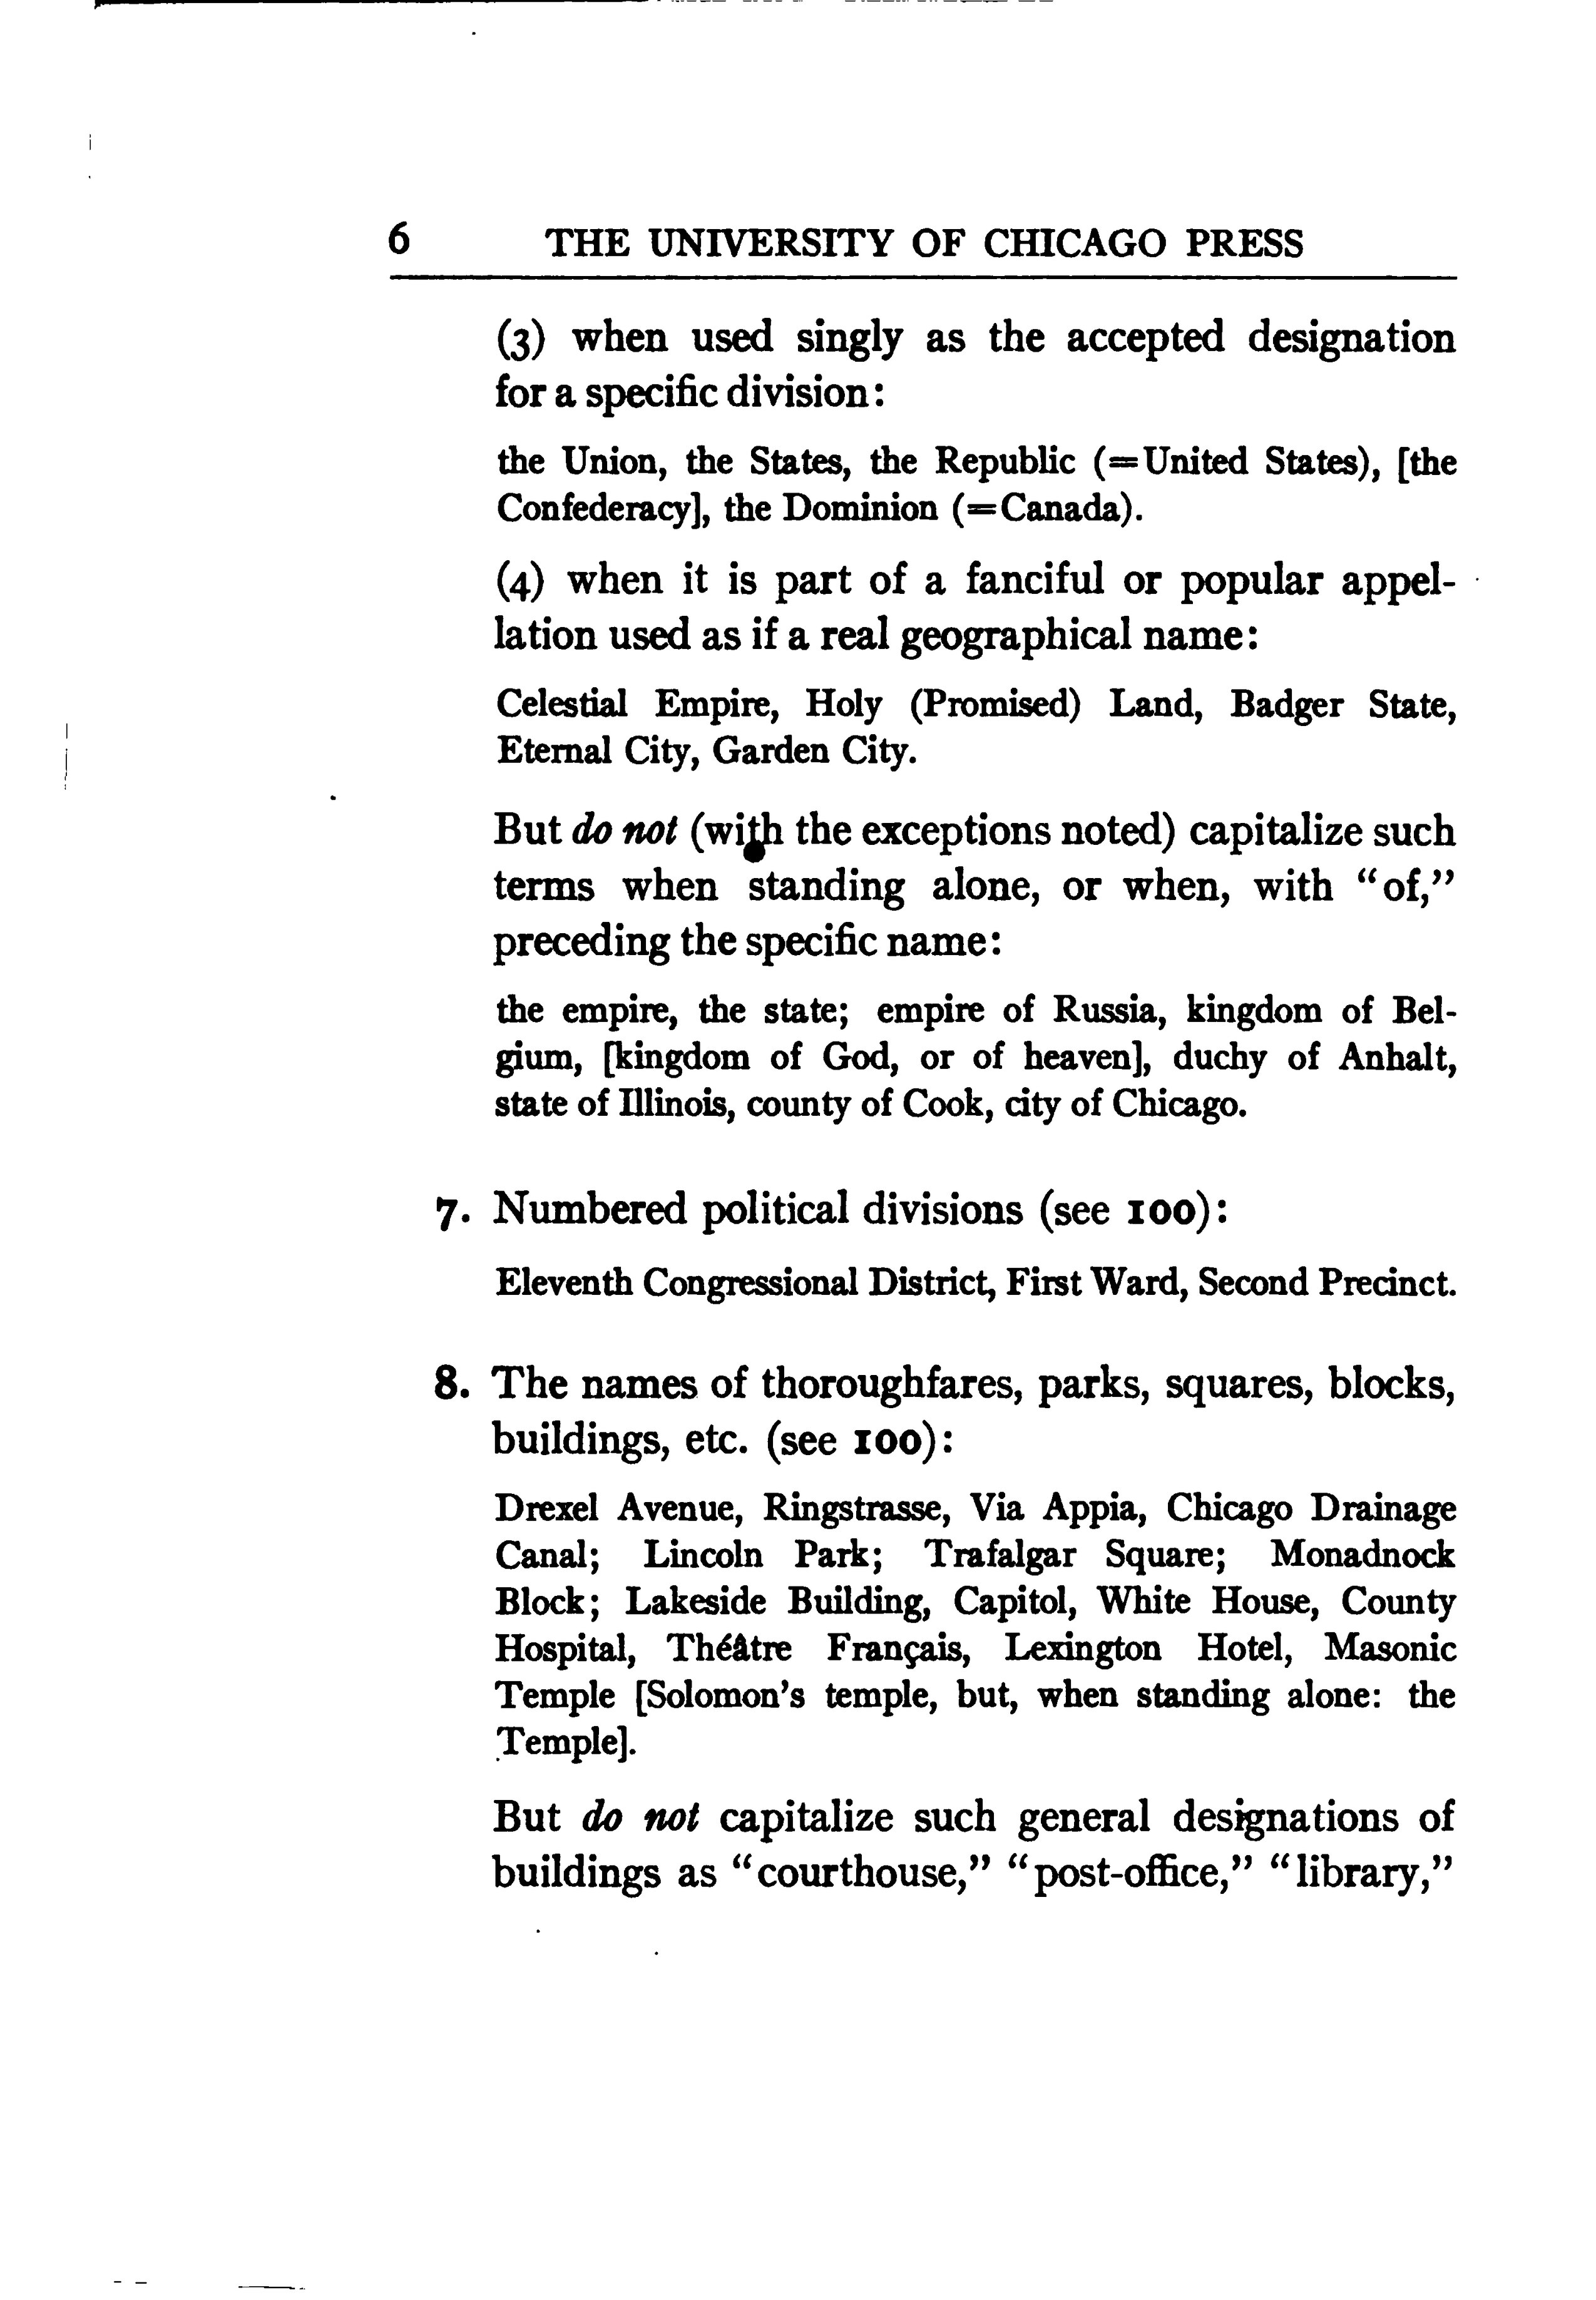 chicago manual of style double citation